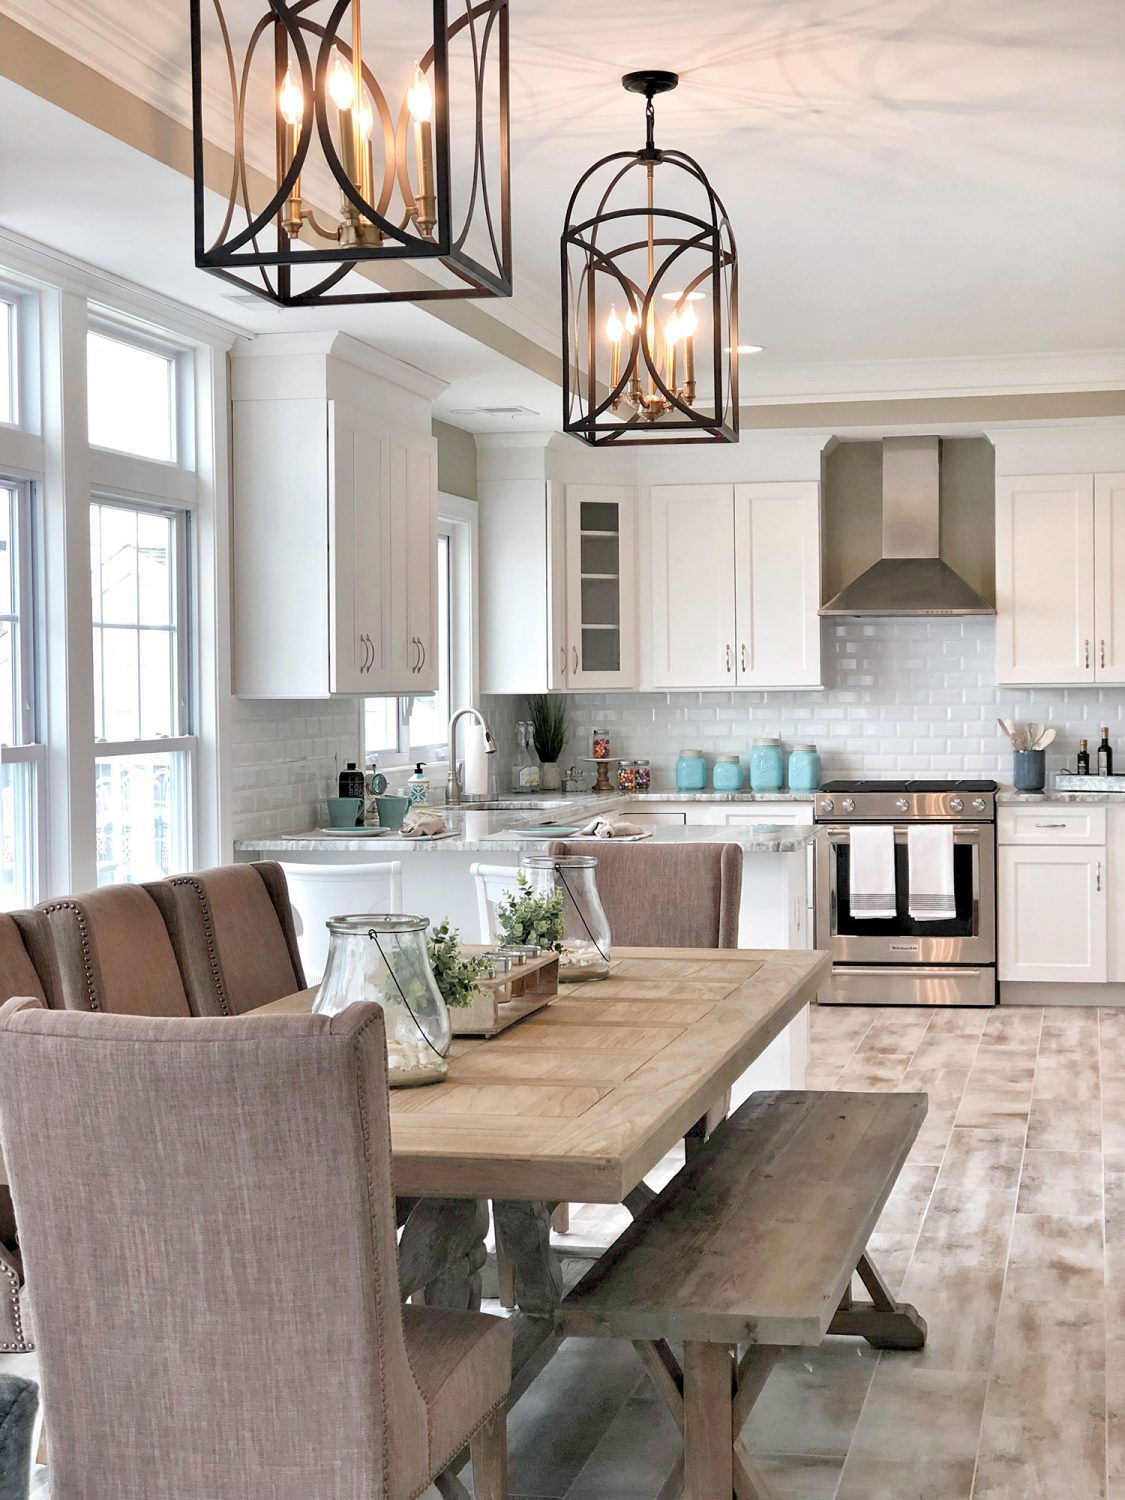 Lavallette New Jersey - Kitchen Interior Design